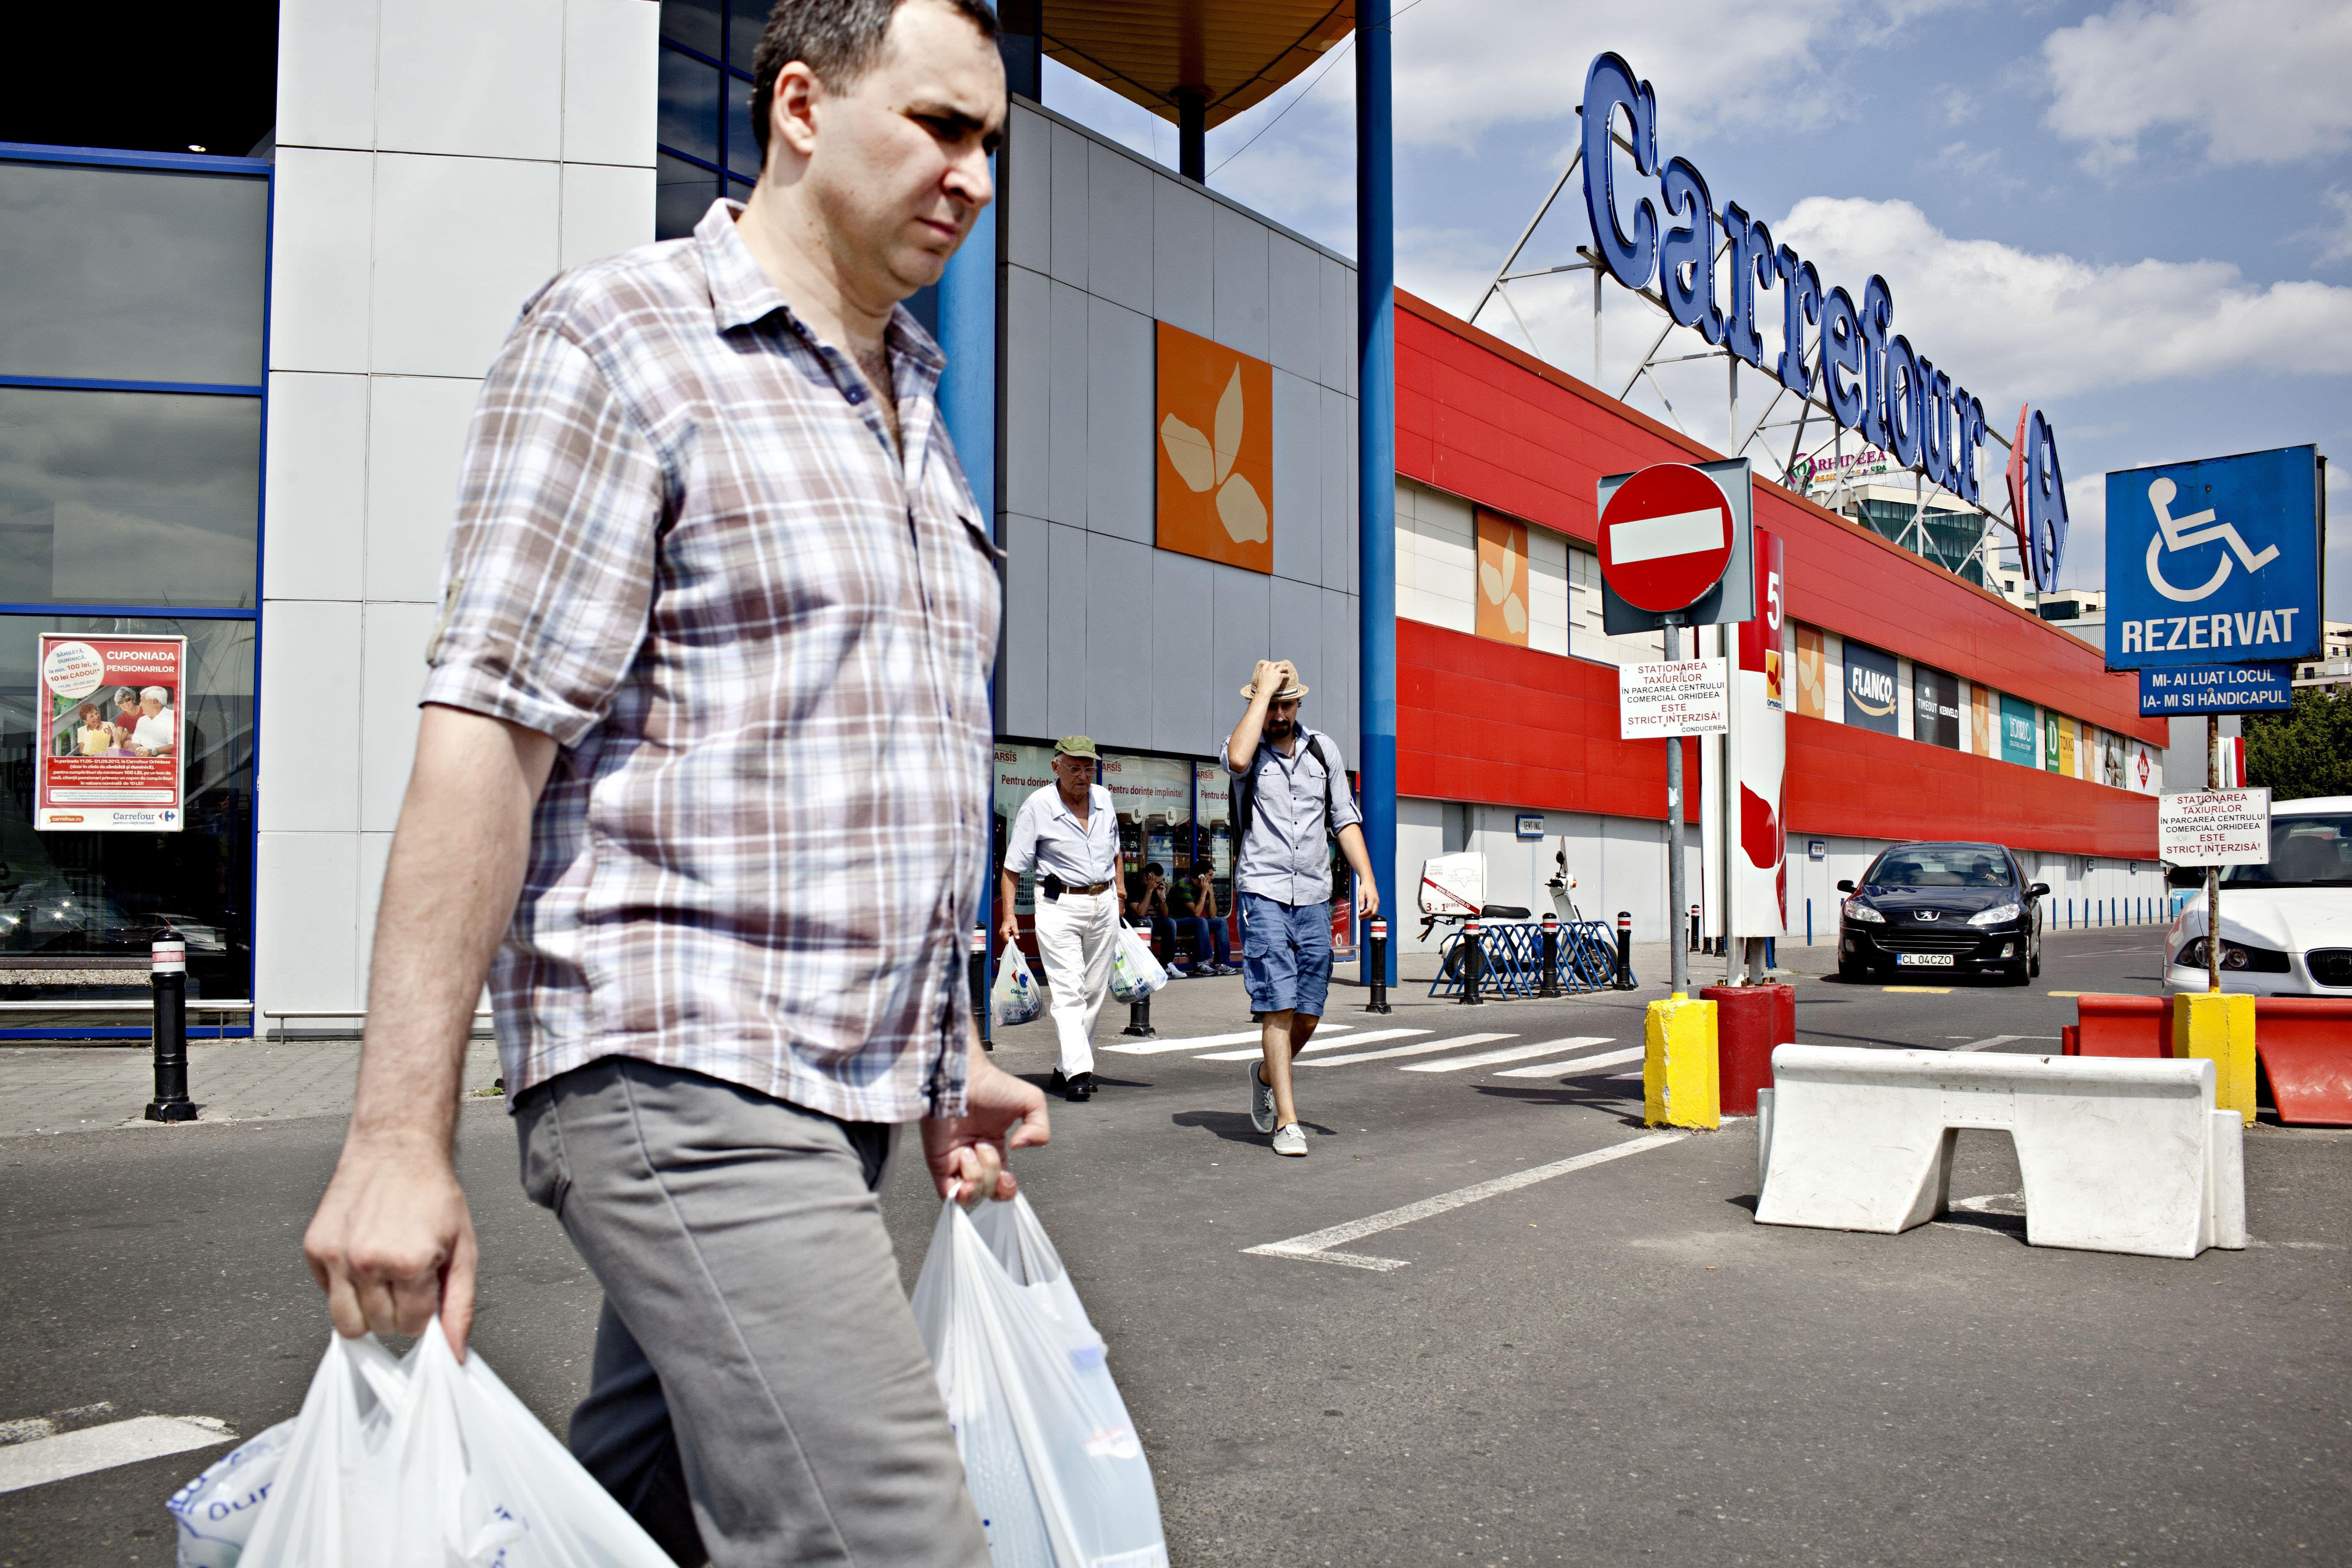 Casino says it rejected Carrefour takeover approach